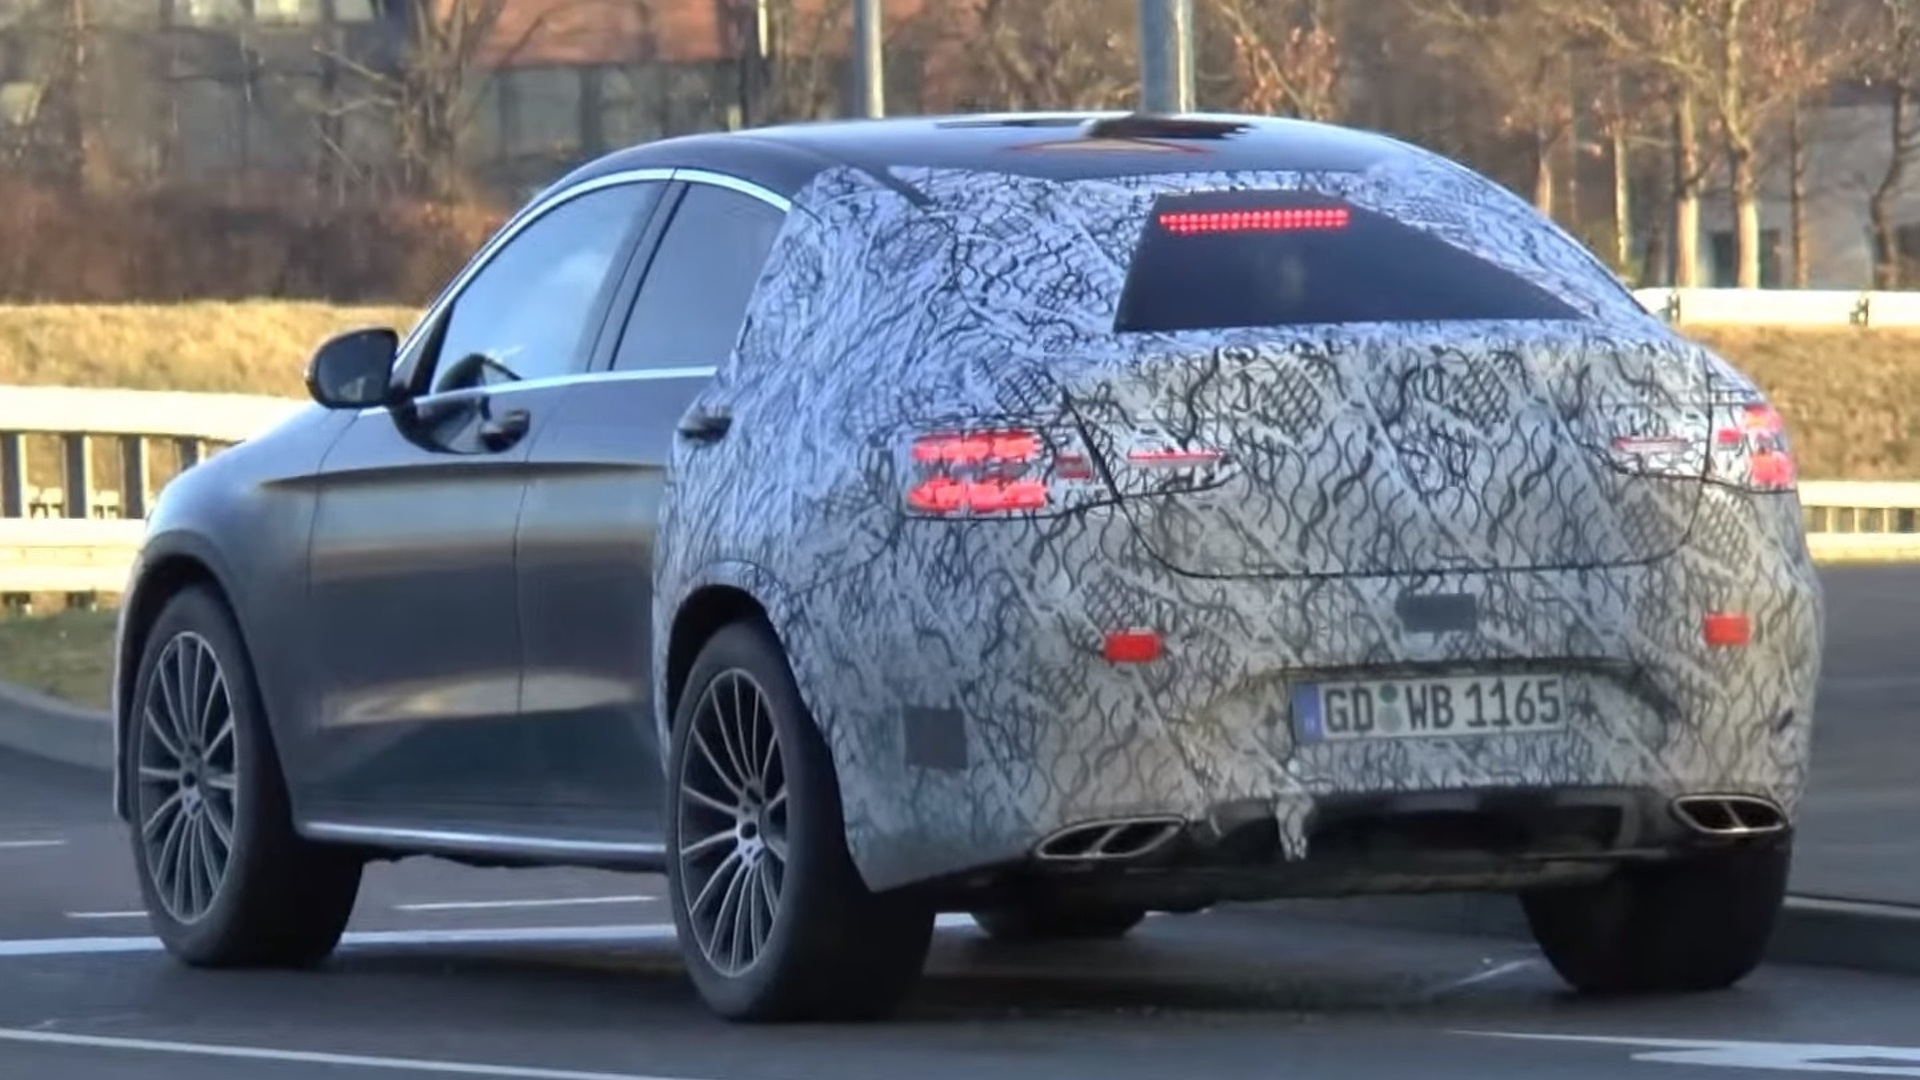 New Gle Coupe 2019 >> Mercedes GLC 450 AMG Coupe spied from behind [video]